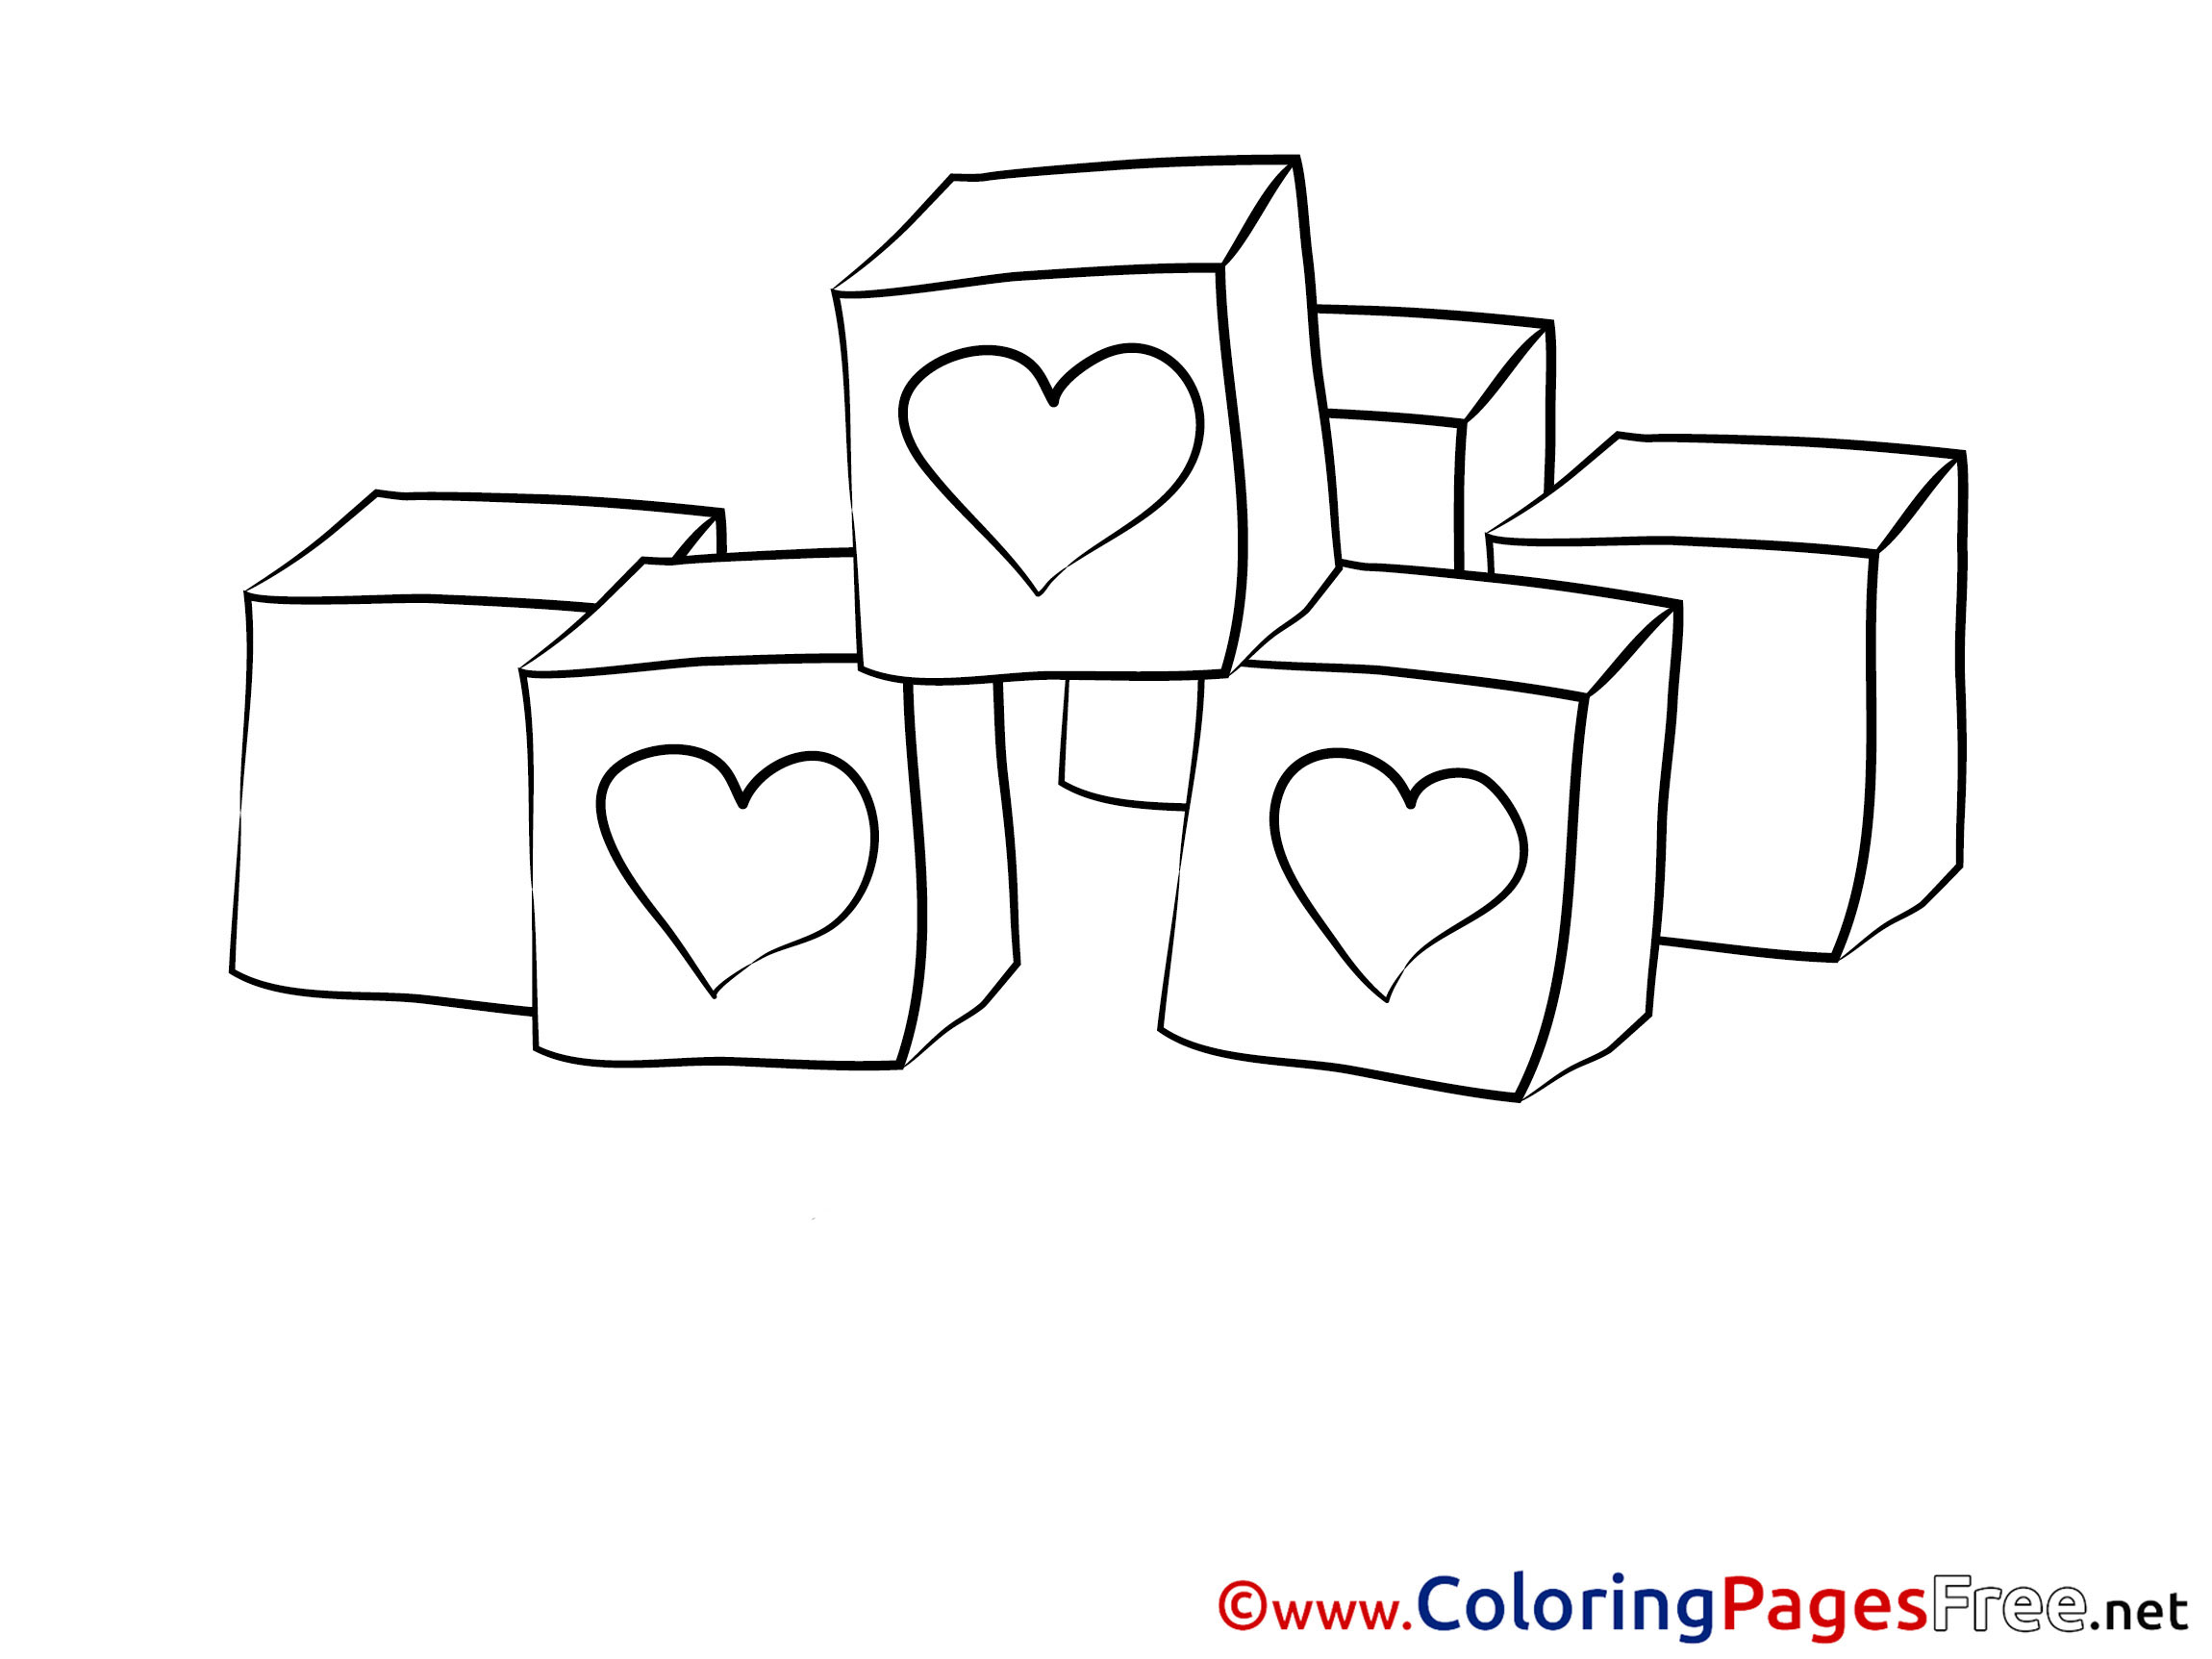 valentina design coloring pages cars - photo #37